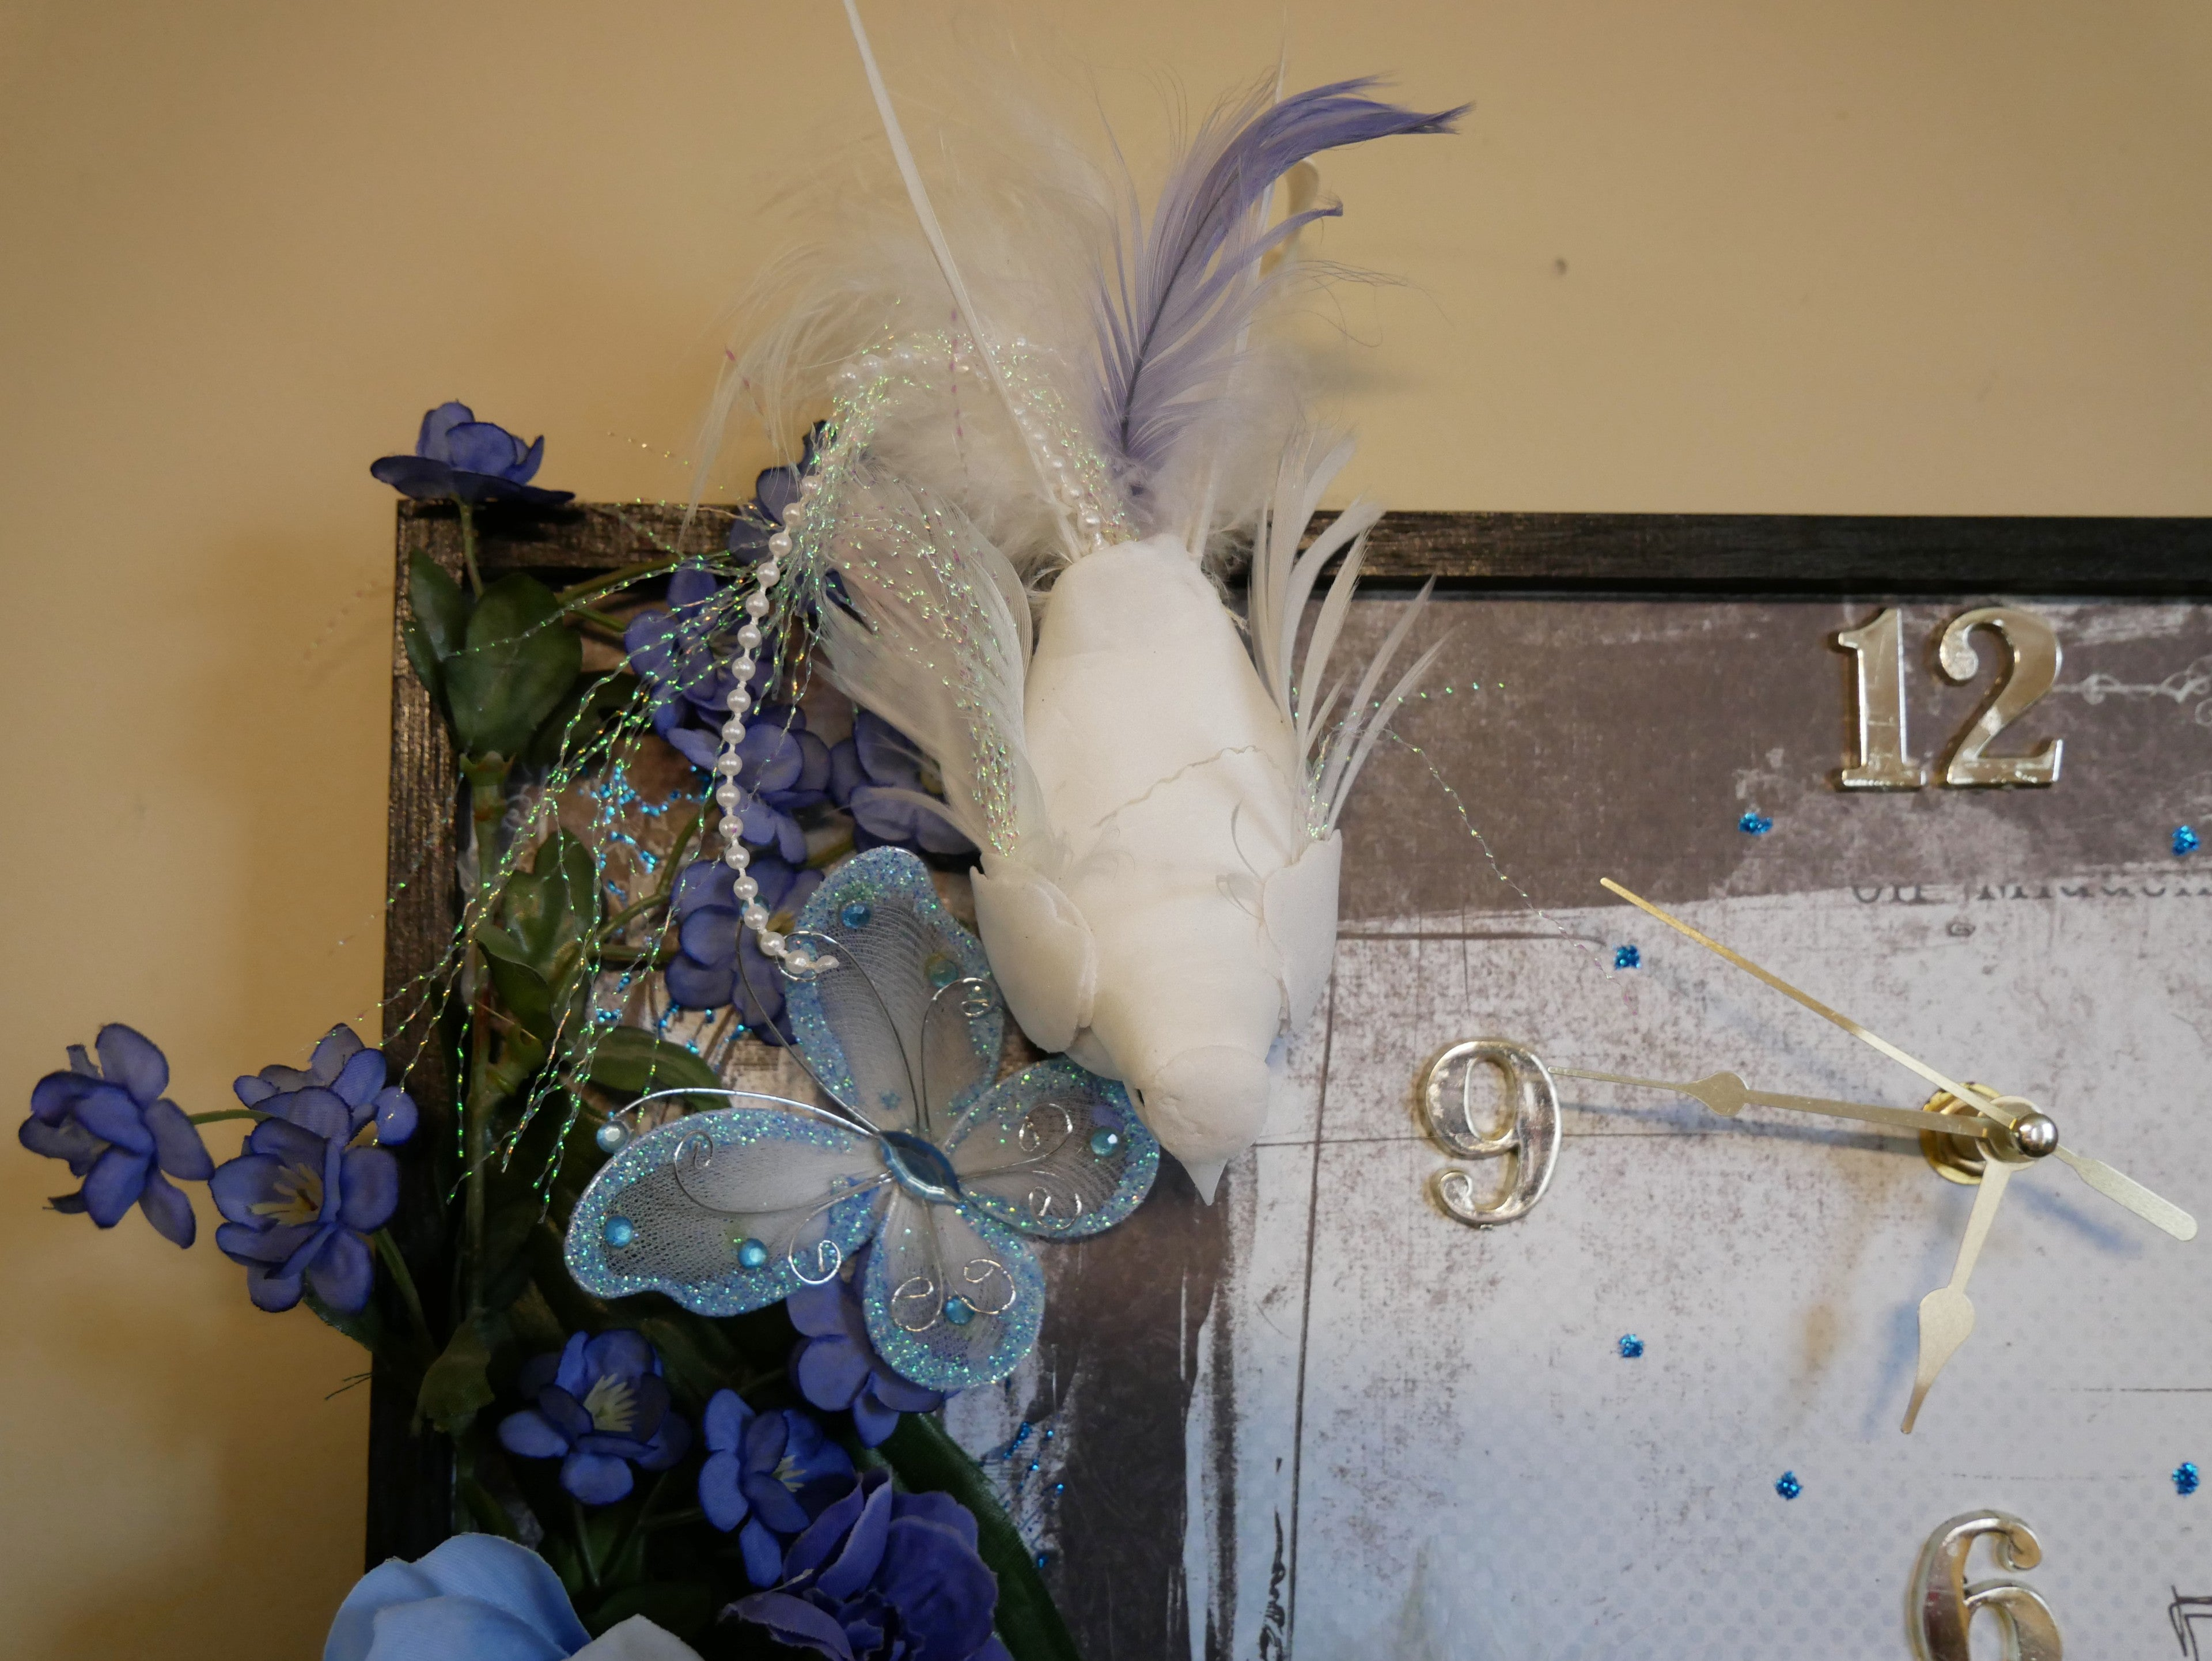 Decor-Angel-Nchanted-Gifts